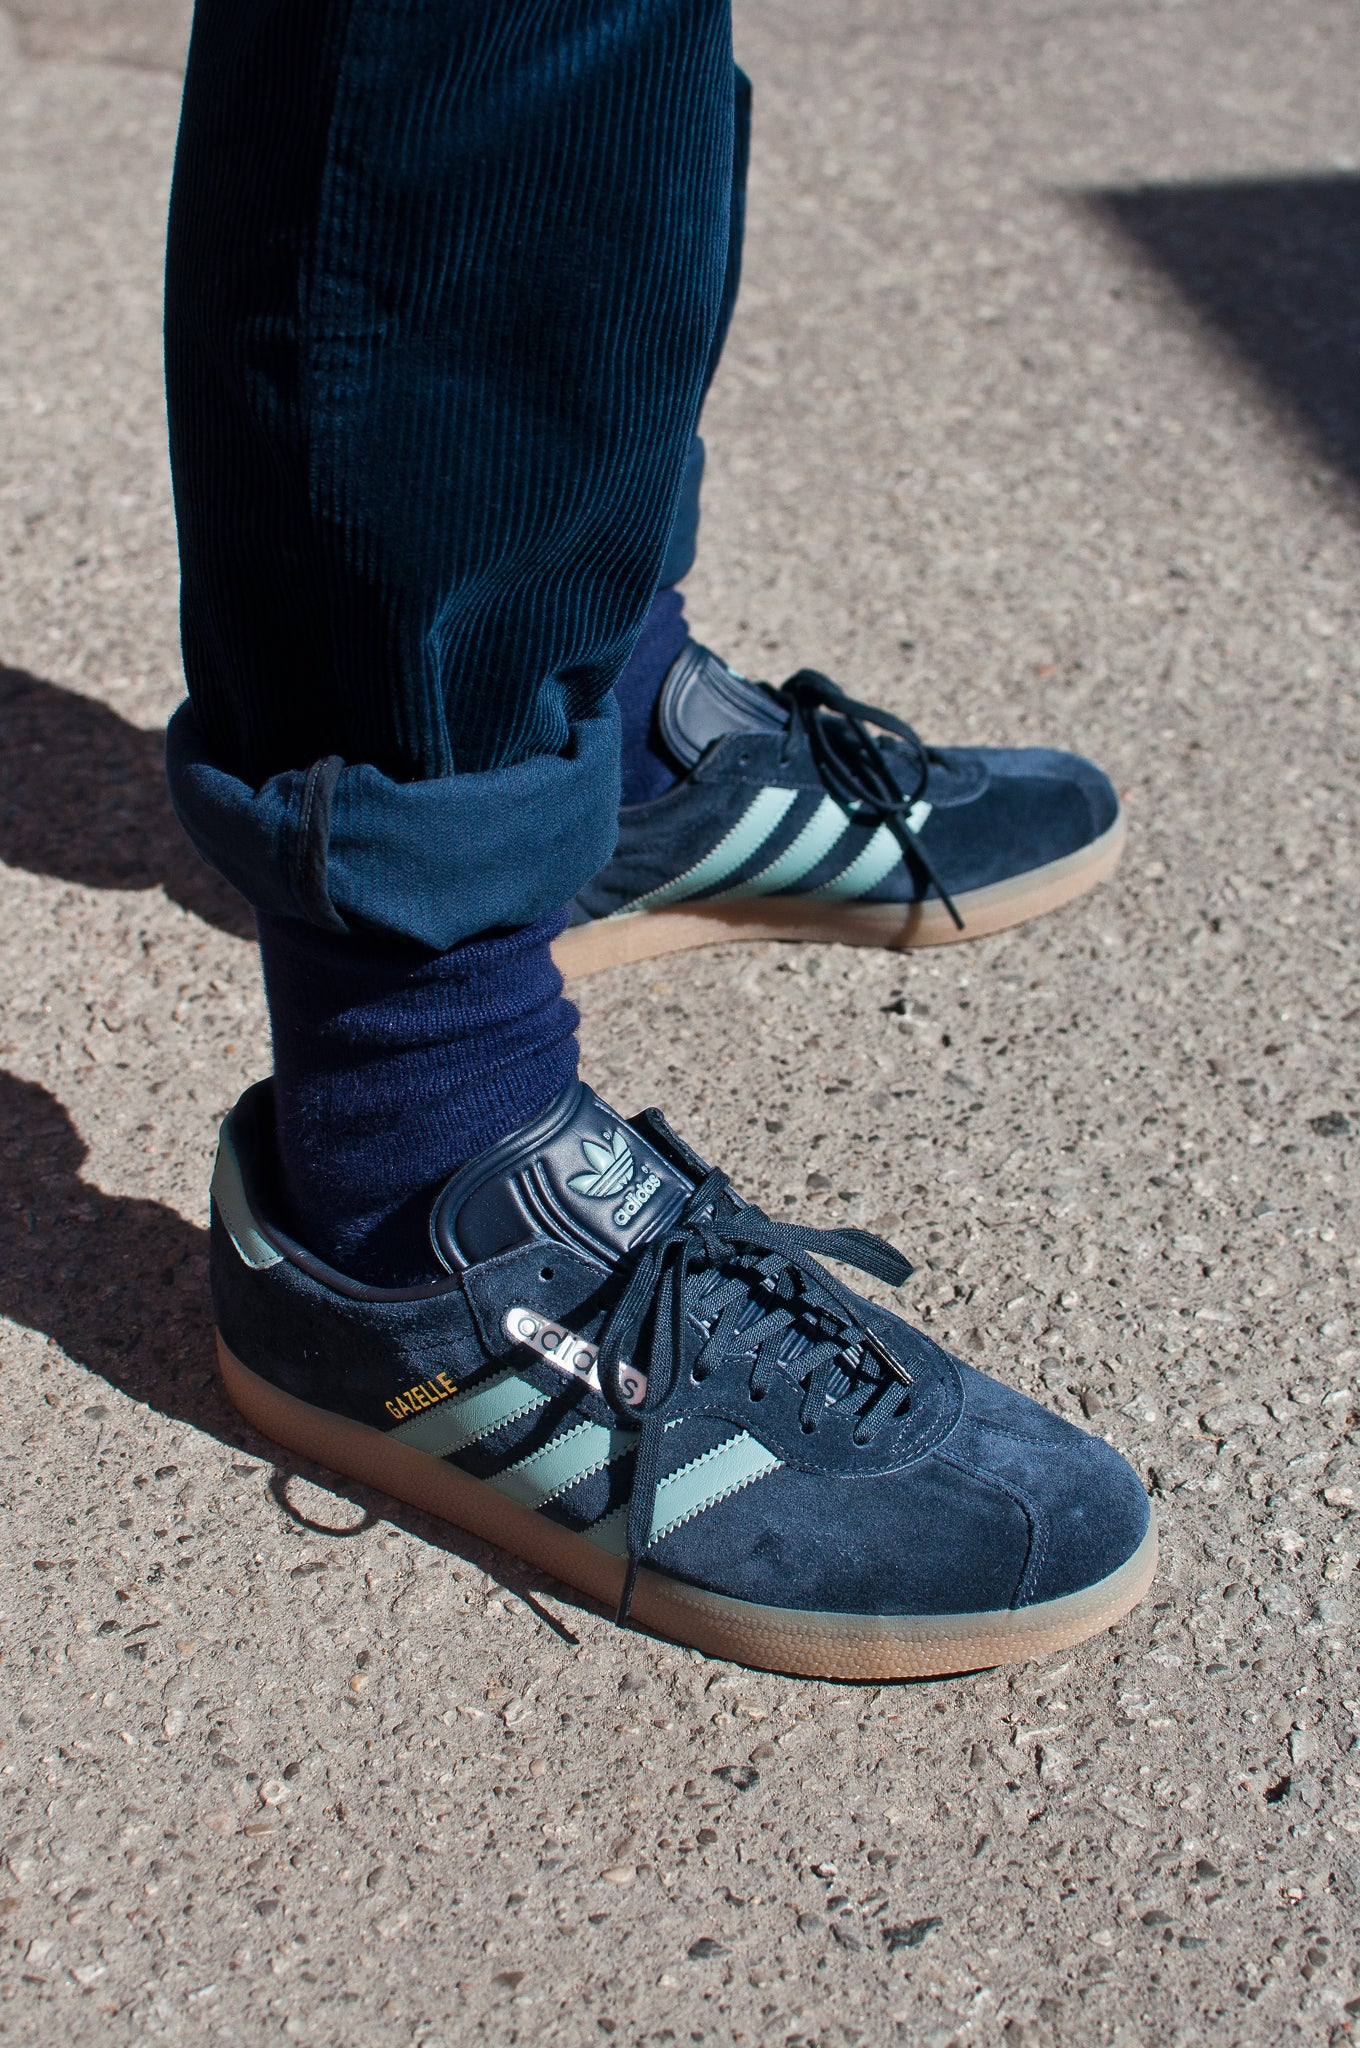 Adidas Originals Gazelle Super Night Navy/Vapour Steel at shoplostfound